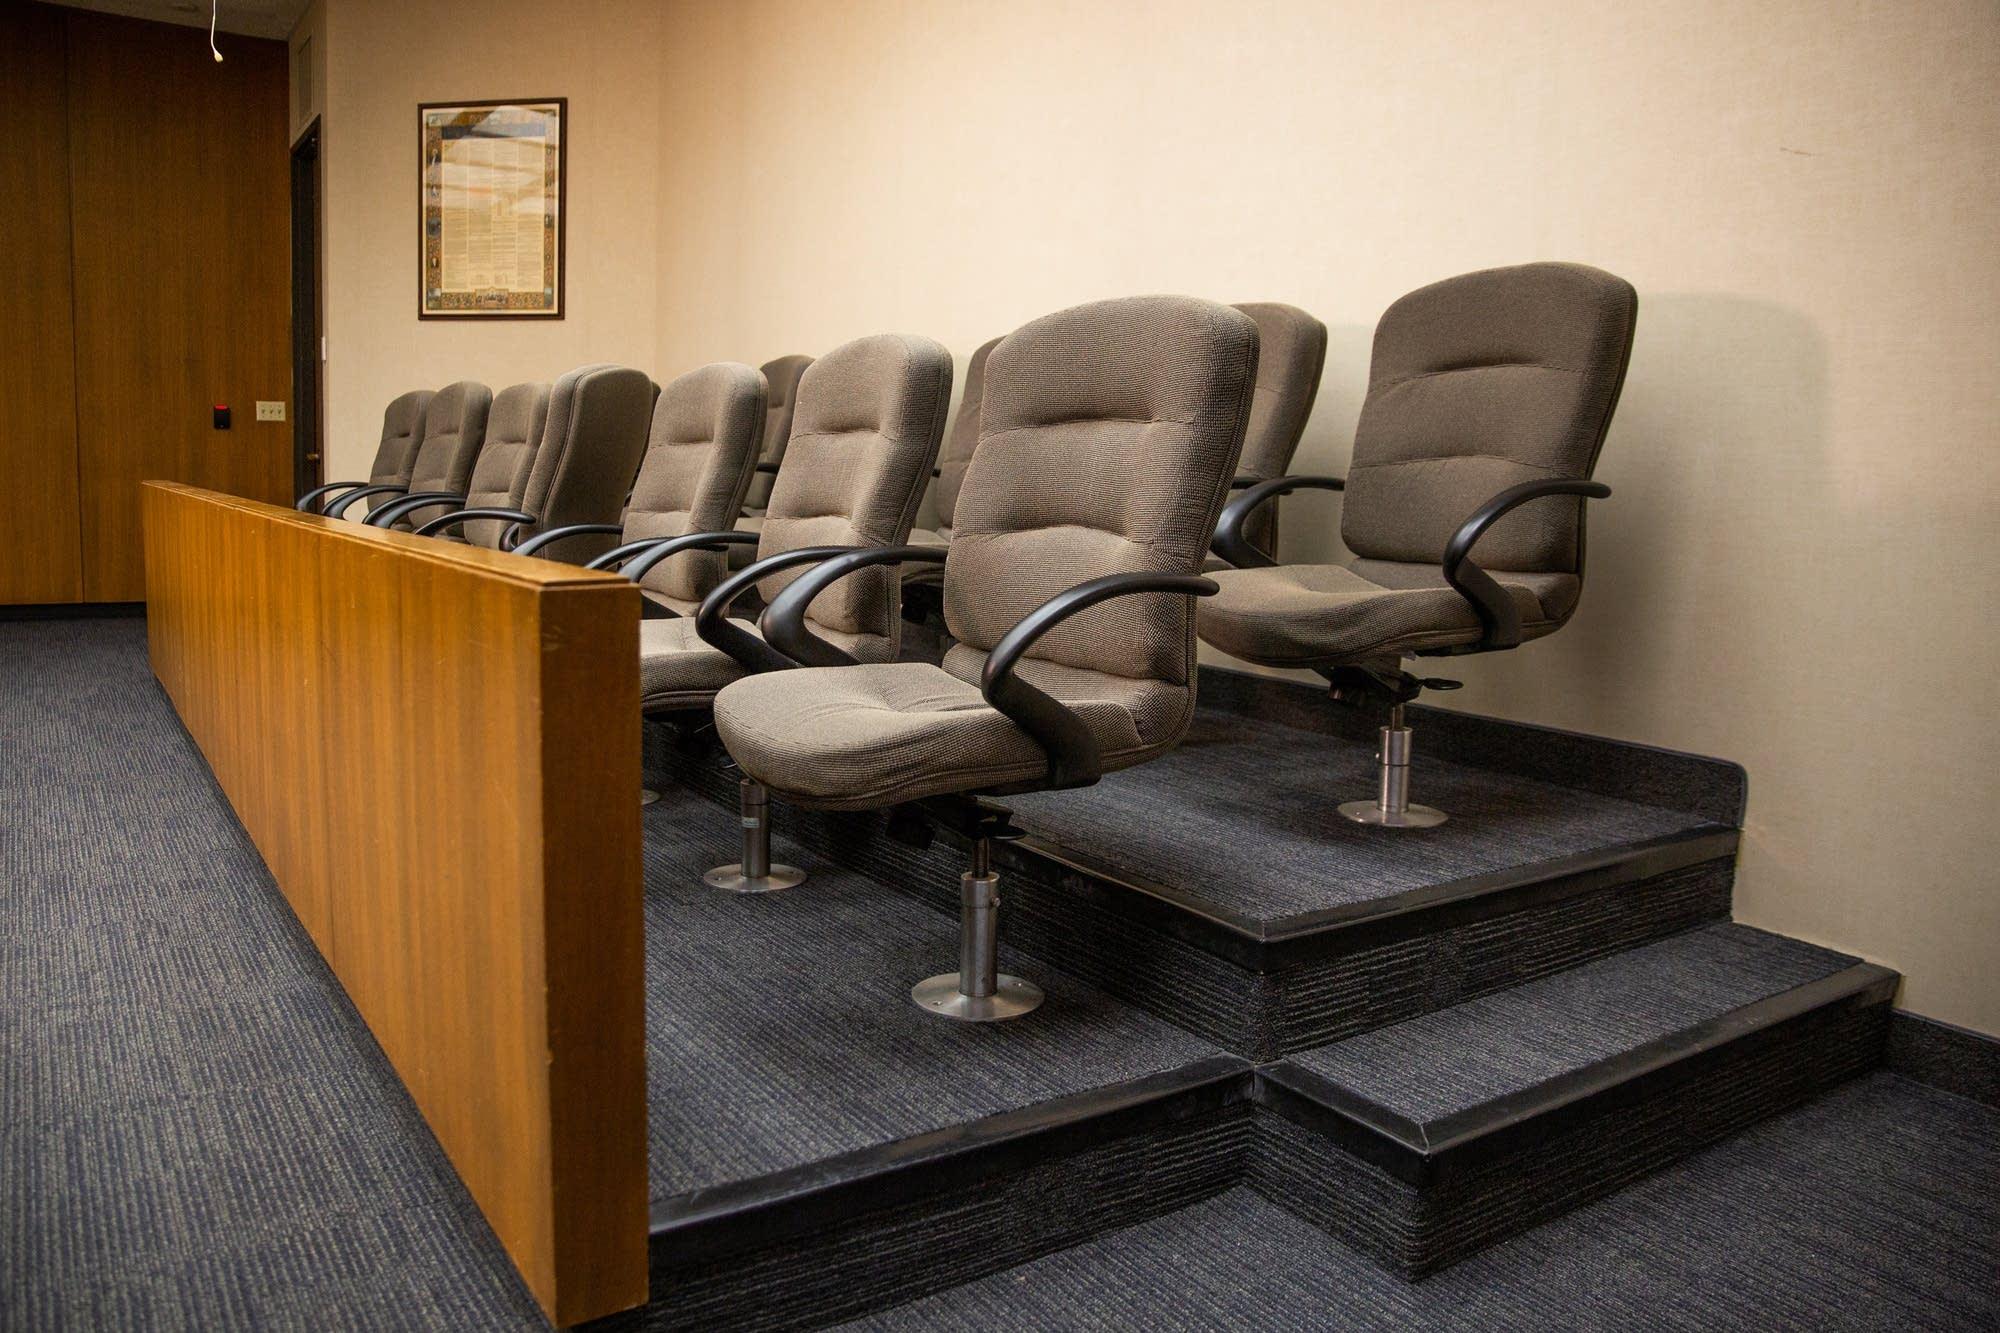 The jury box sits in the courtroom of Mohamed Noor's trial.